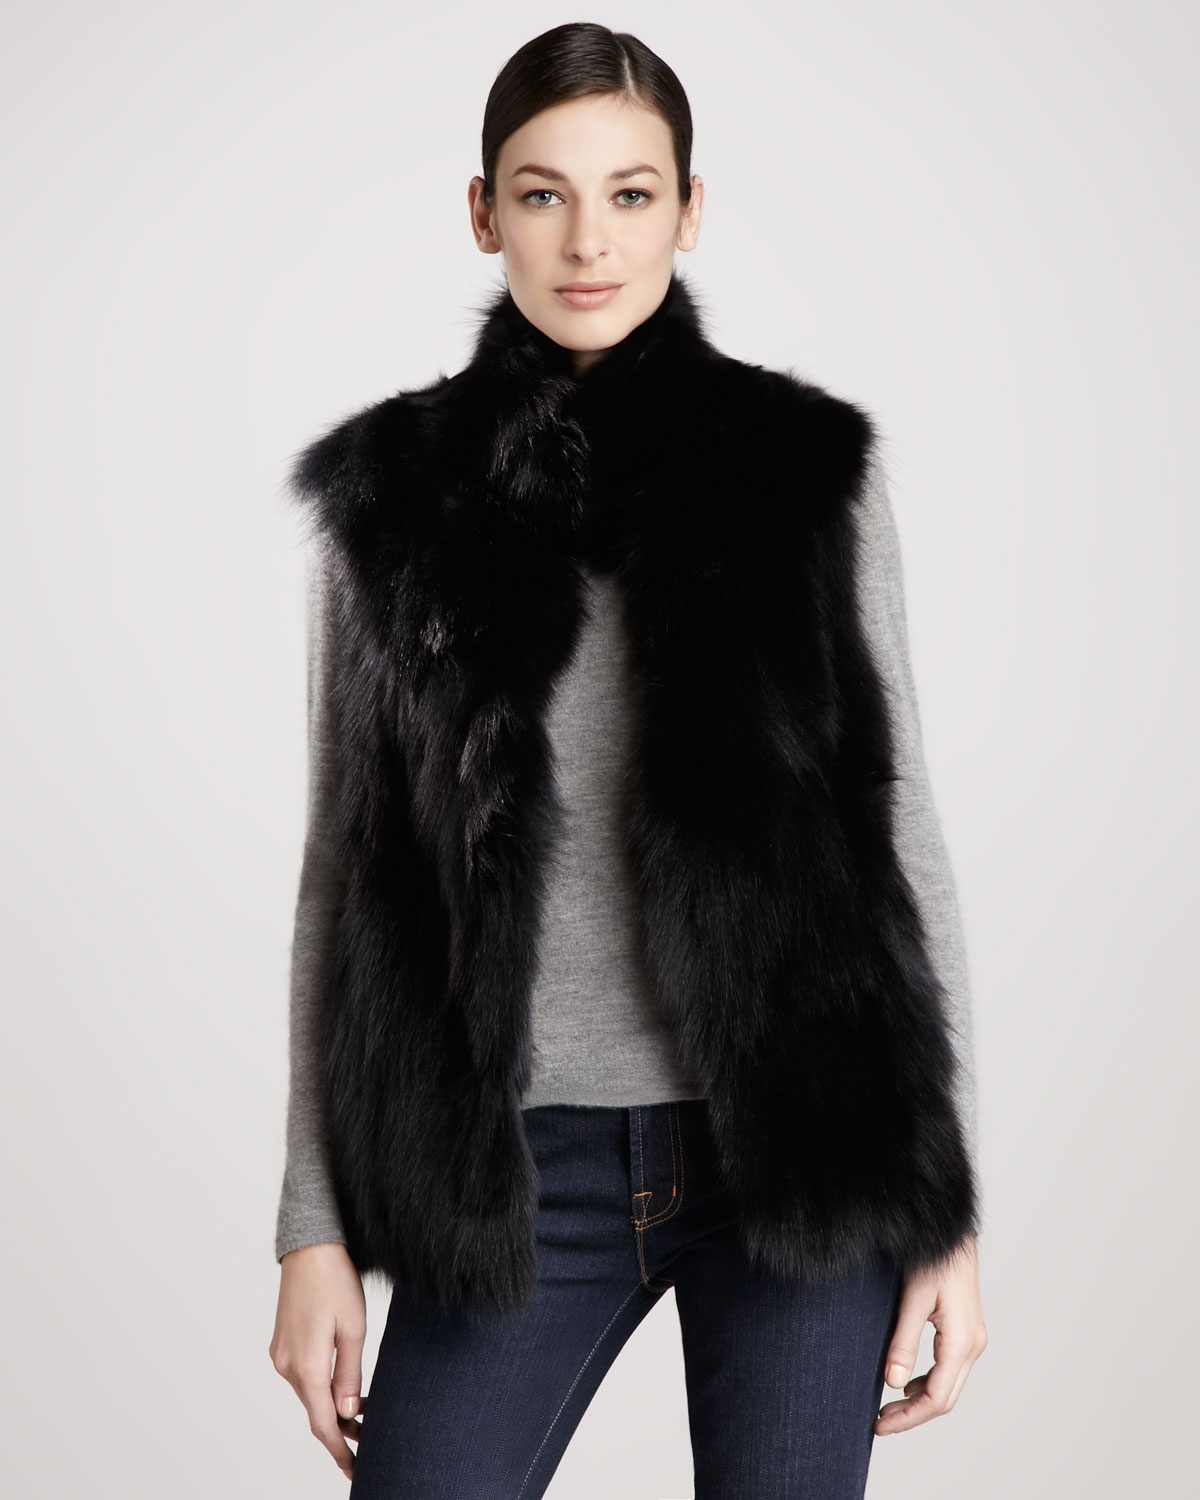 ML Furs has the best selection of chic fur coats and outerwear. Shop qrqceh.tk today, we are the leading source of fur items including vests, jackets and more.